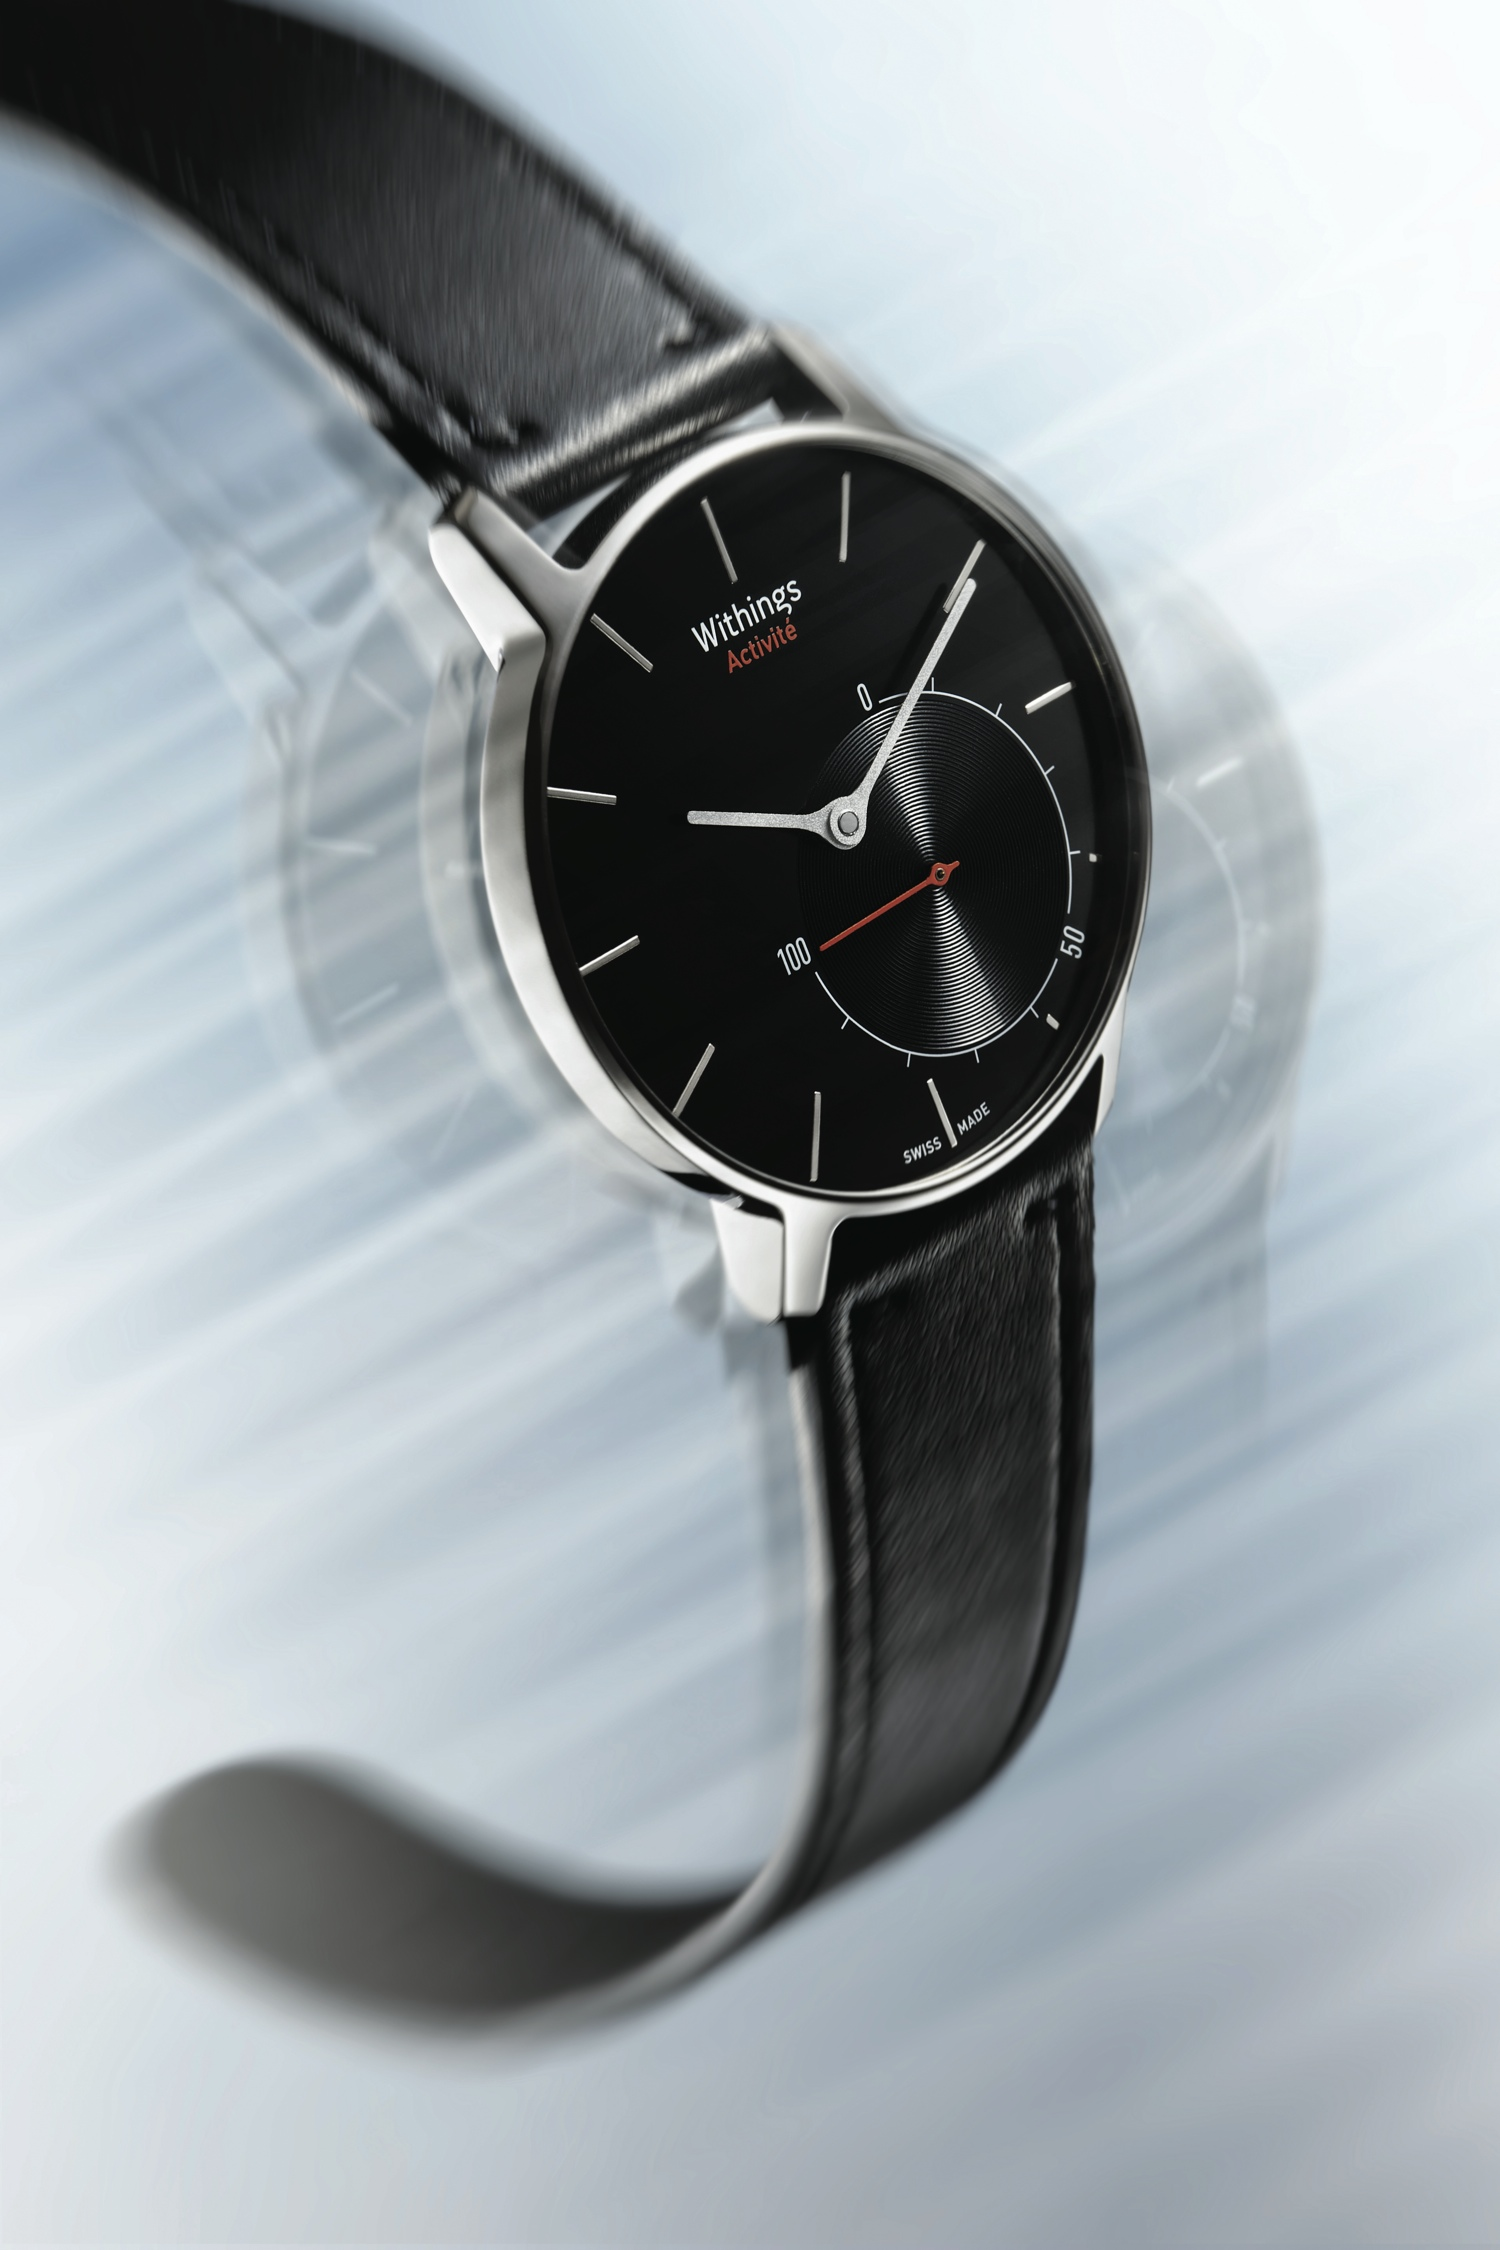 withings-activite-fitness-watch-5